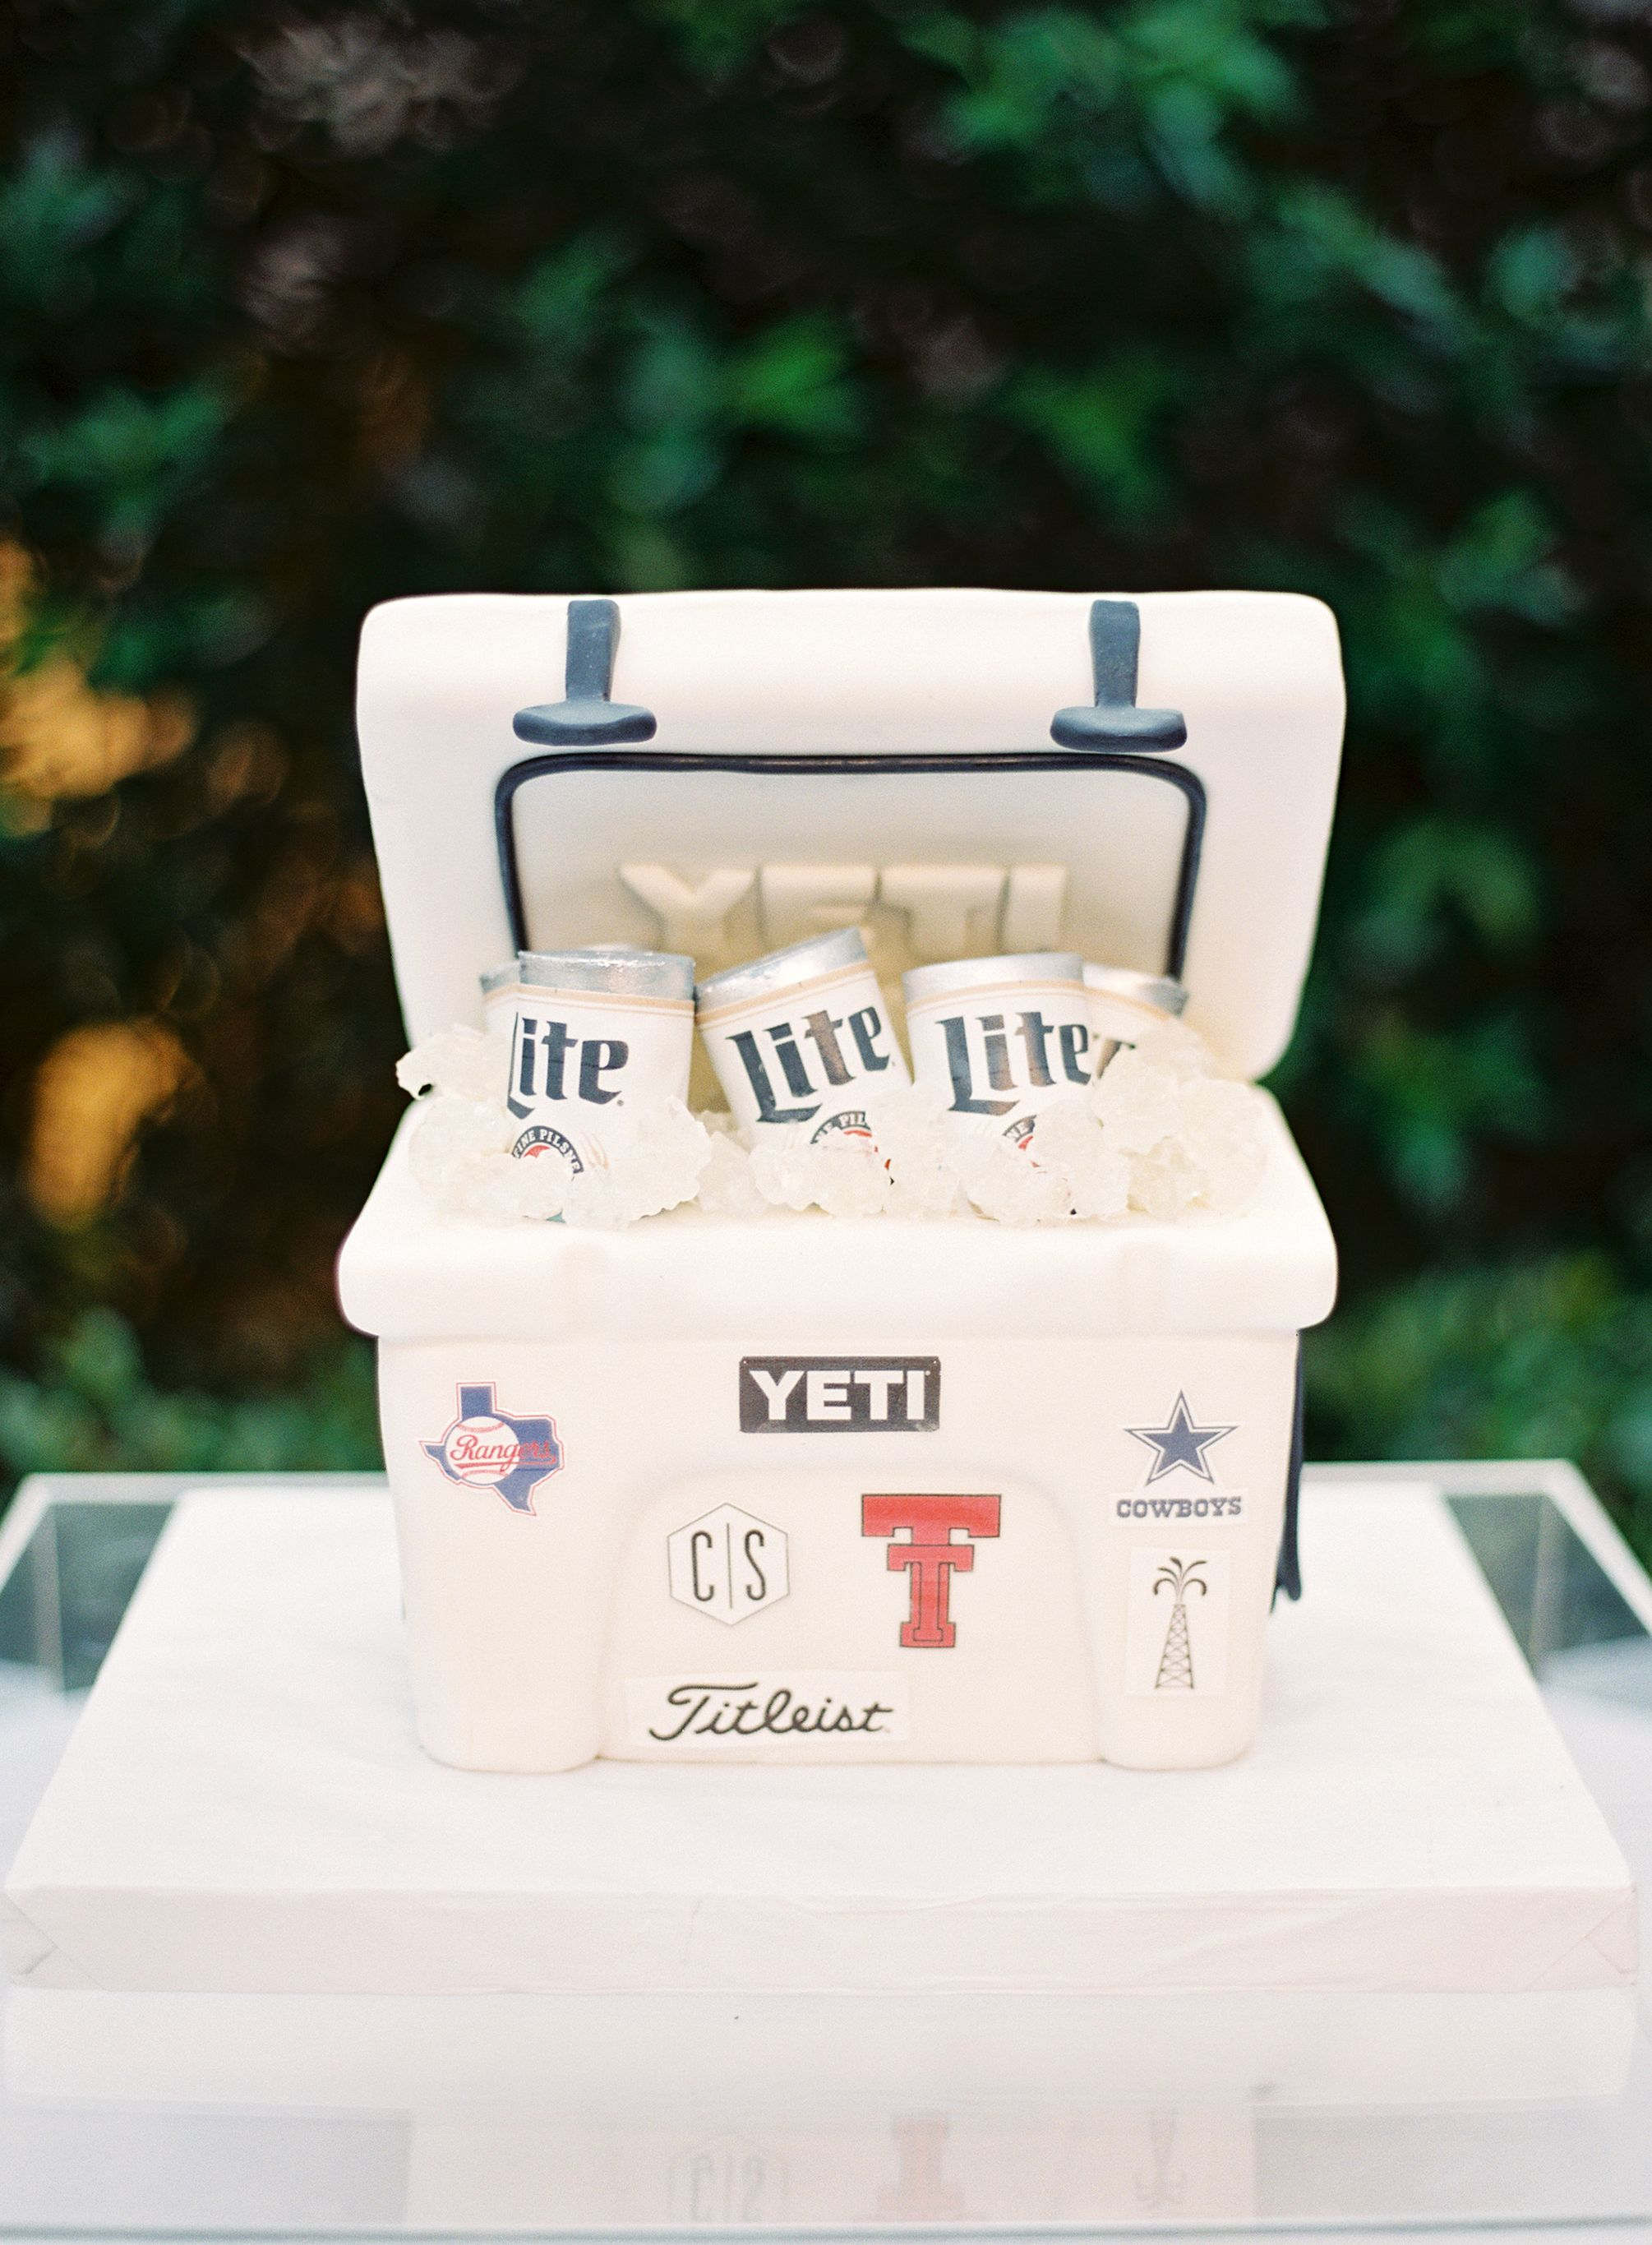 Such a fun idea for a groom's cake!